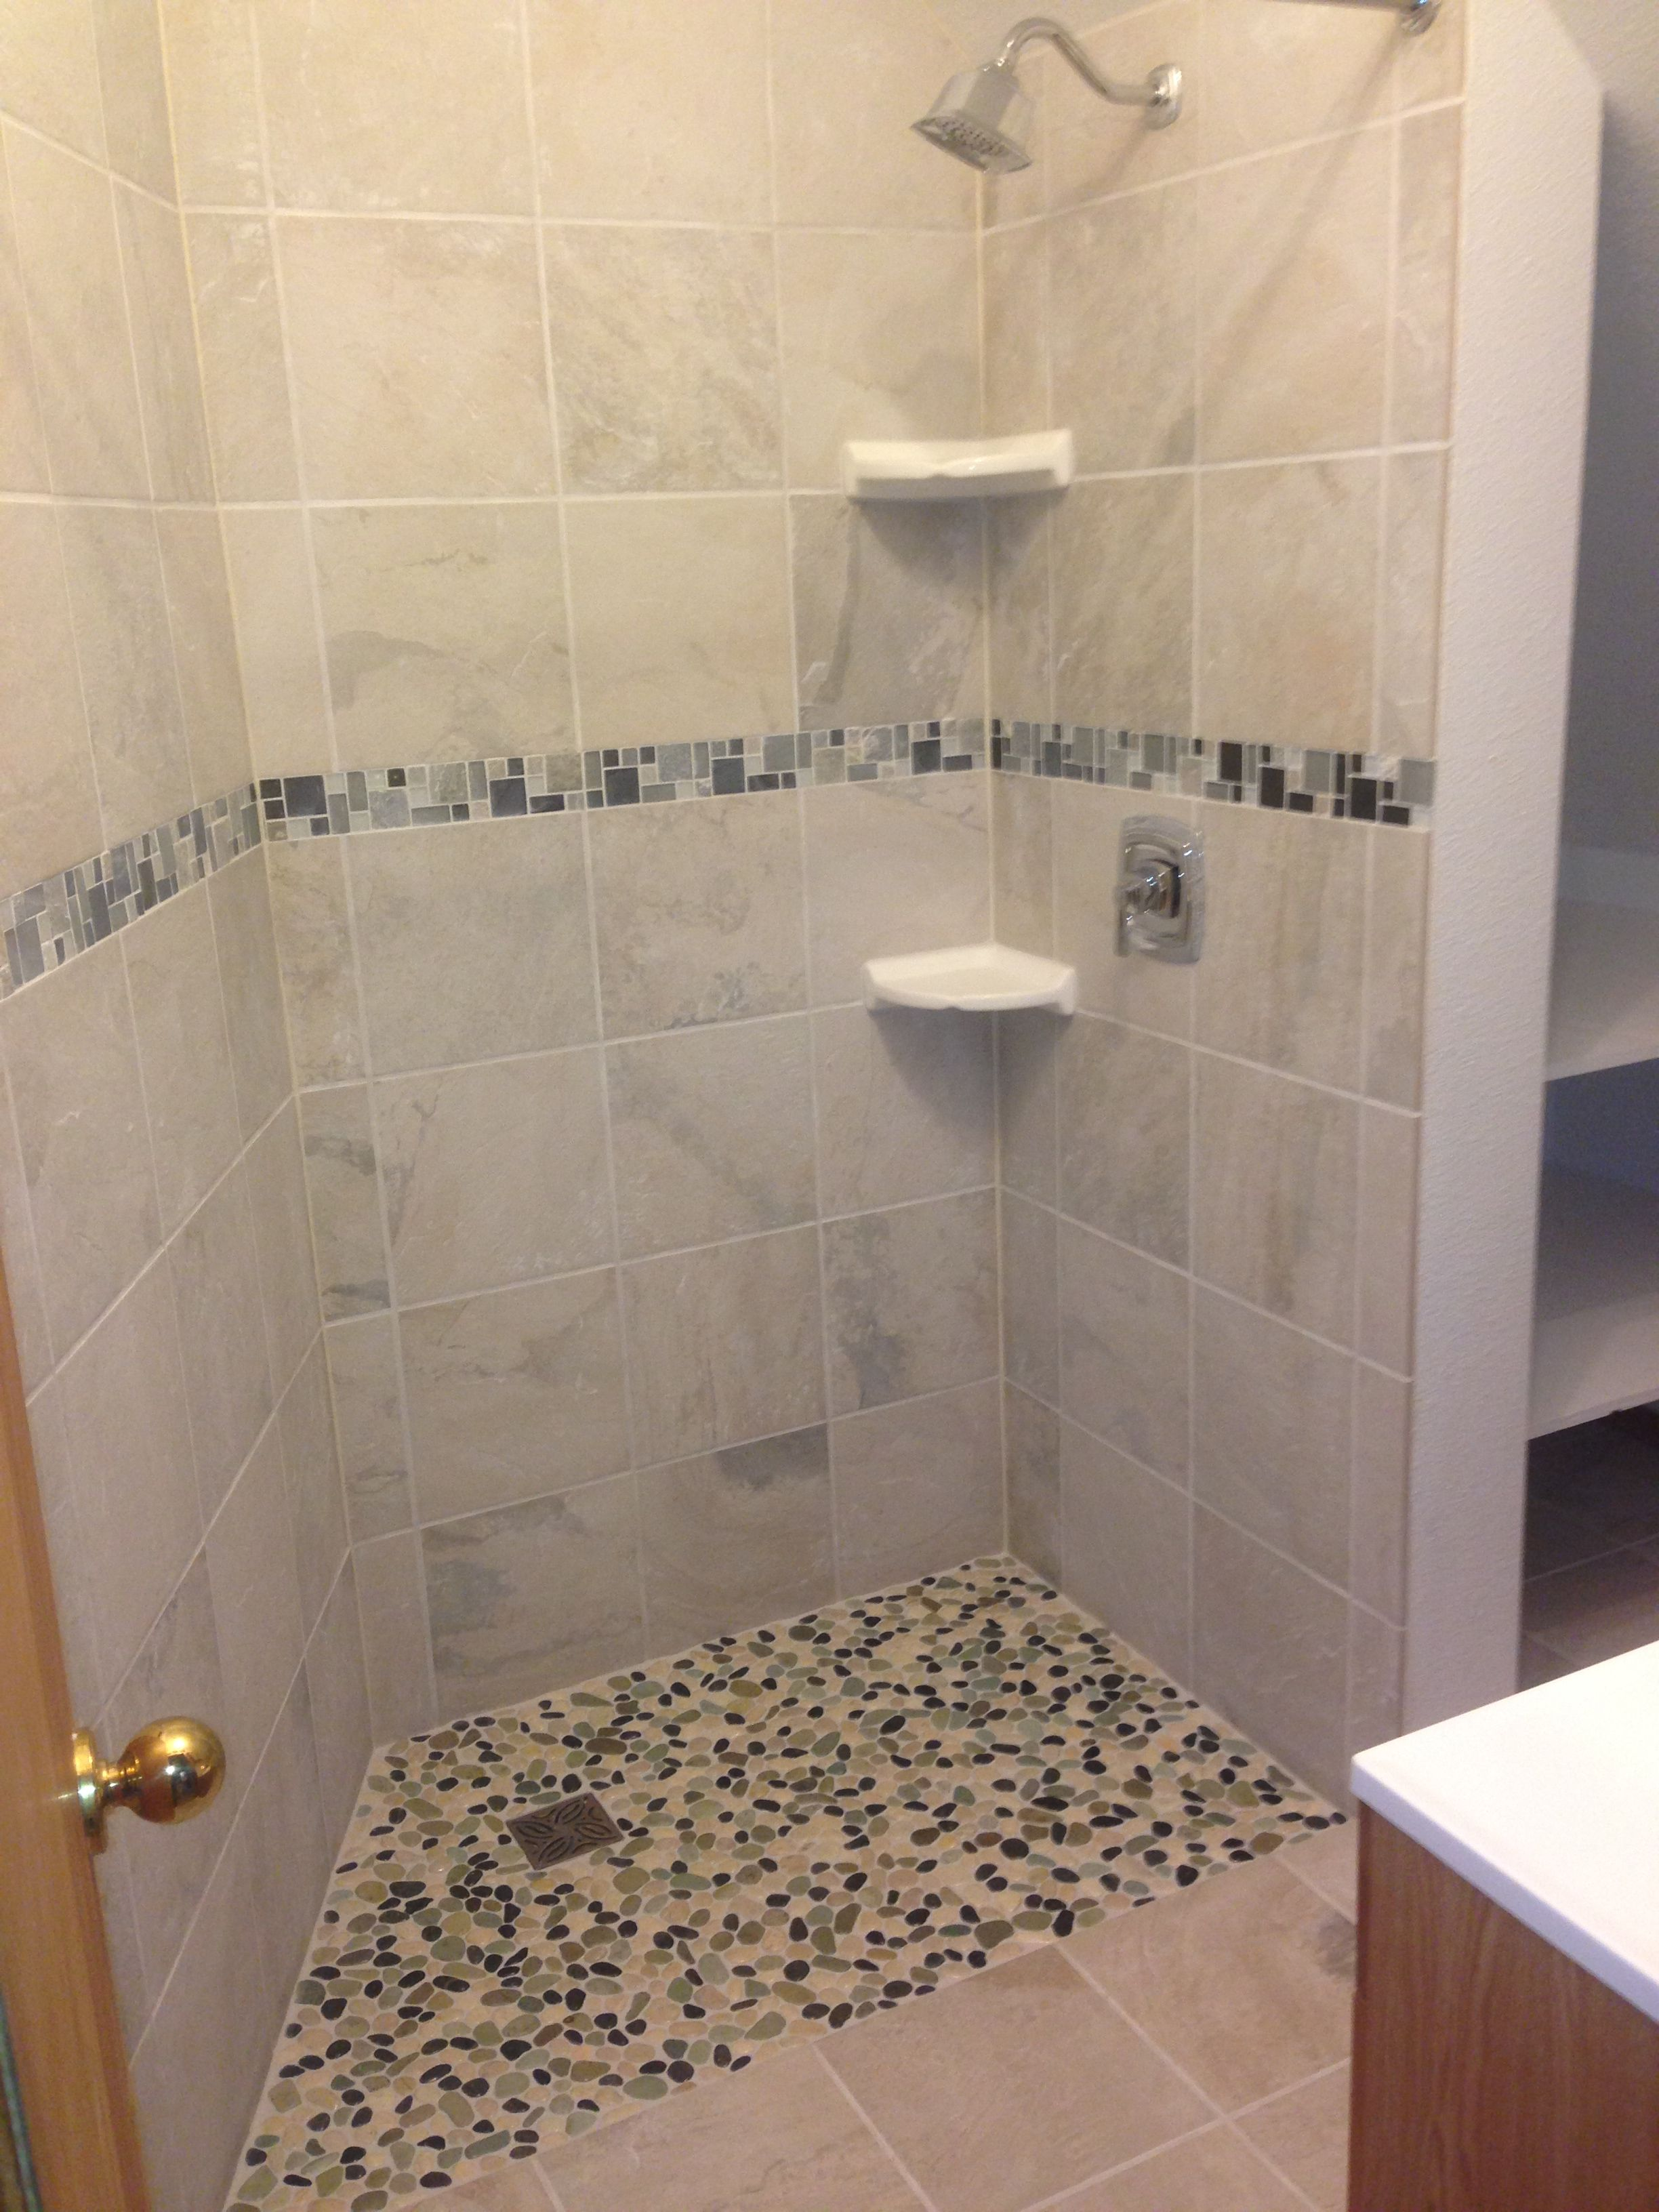 Floor Tile Trim On Shower Walls Google Search Shower Tile